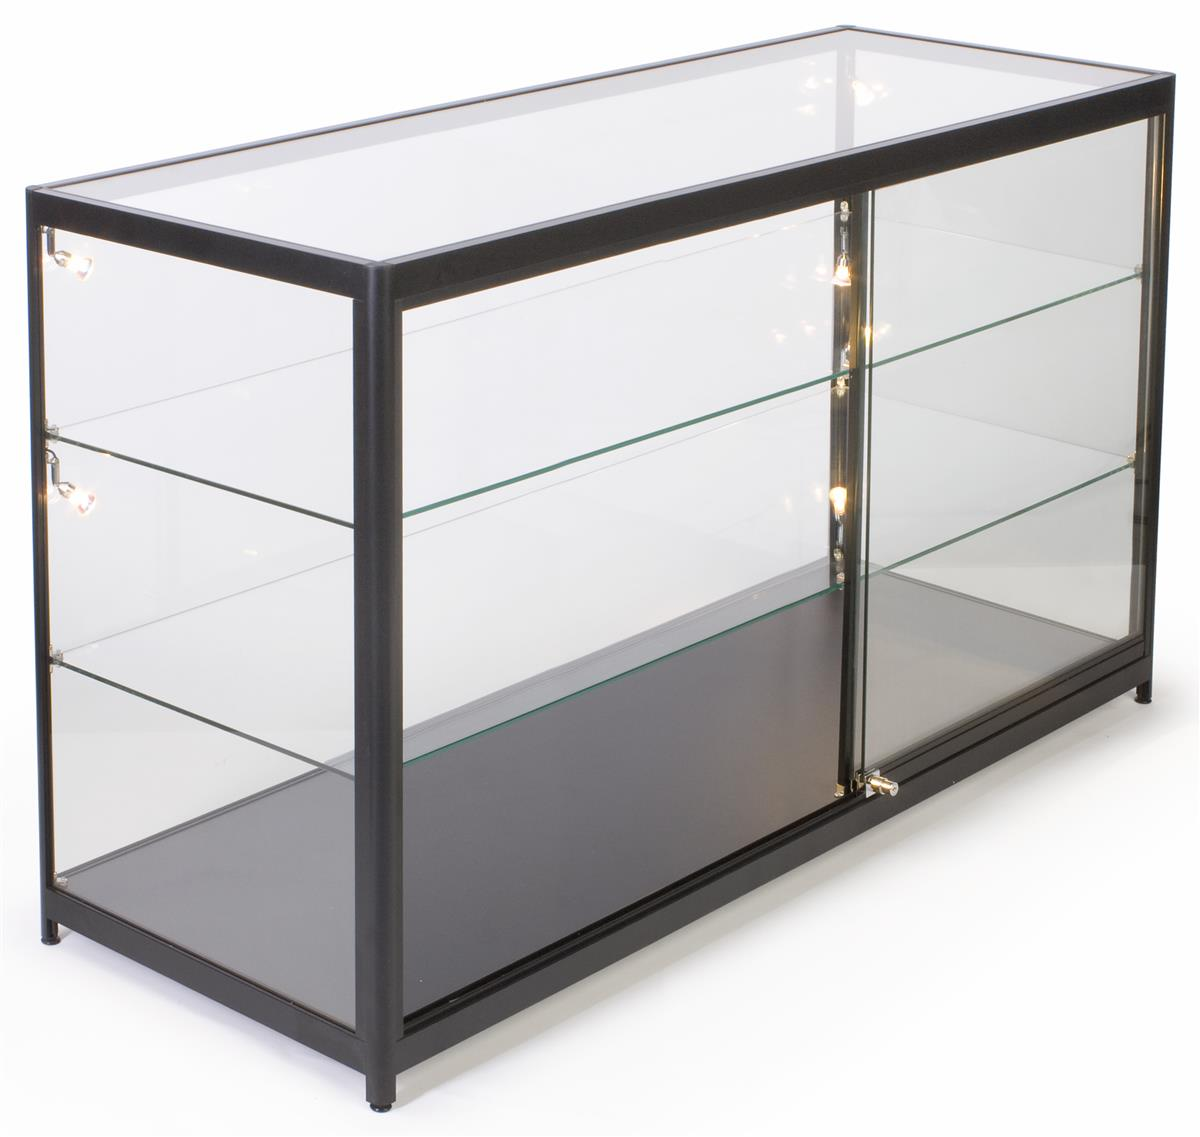 72 Inch Glass Display Counter Black Framing Amp Side Lights